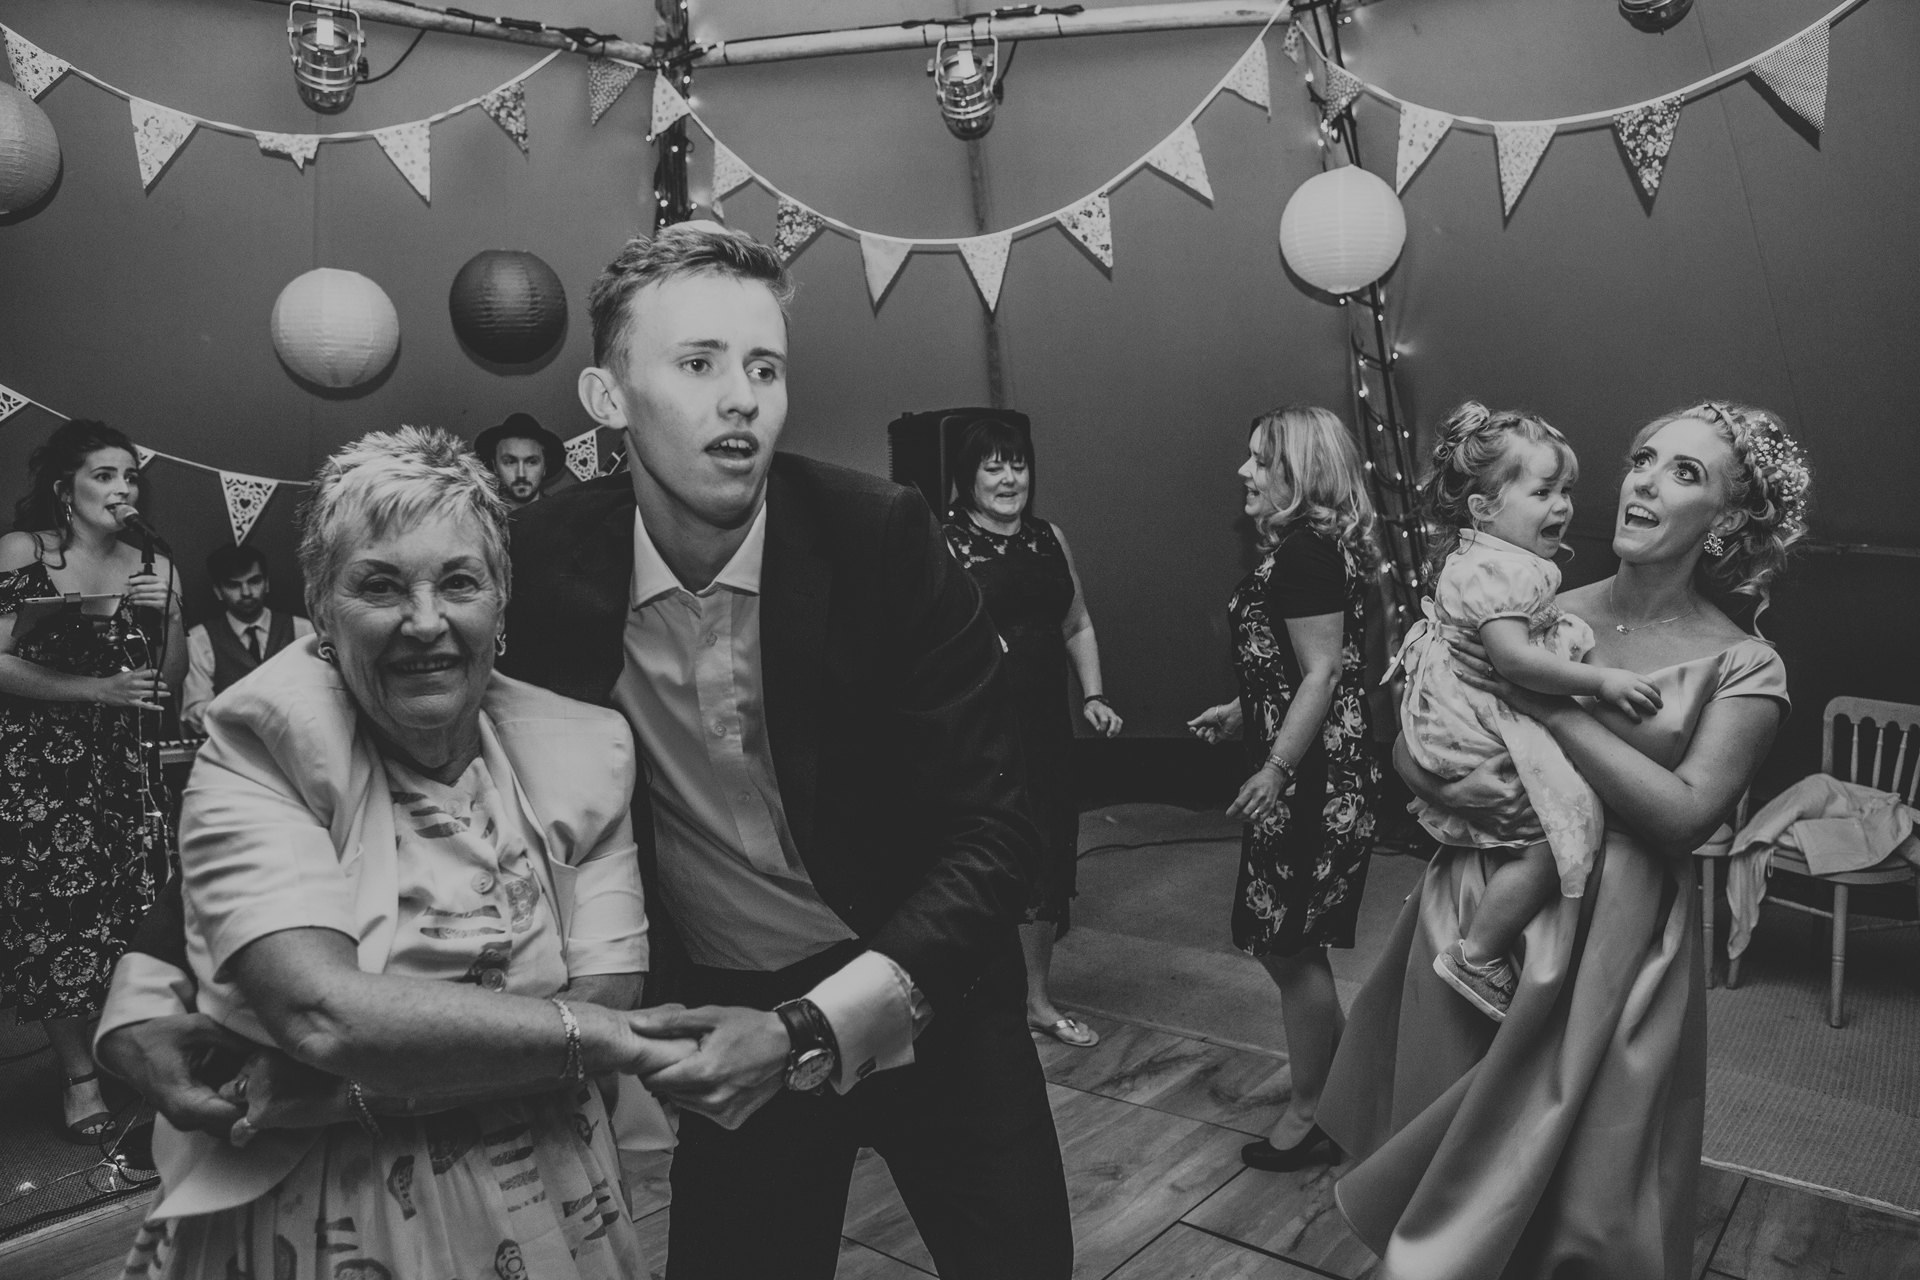 Guests dancing in tipi. Photo in black and white.